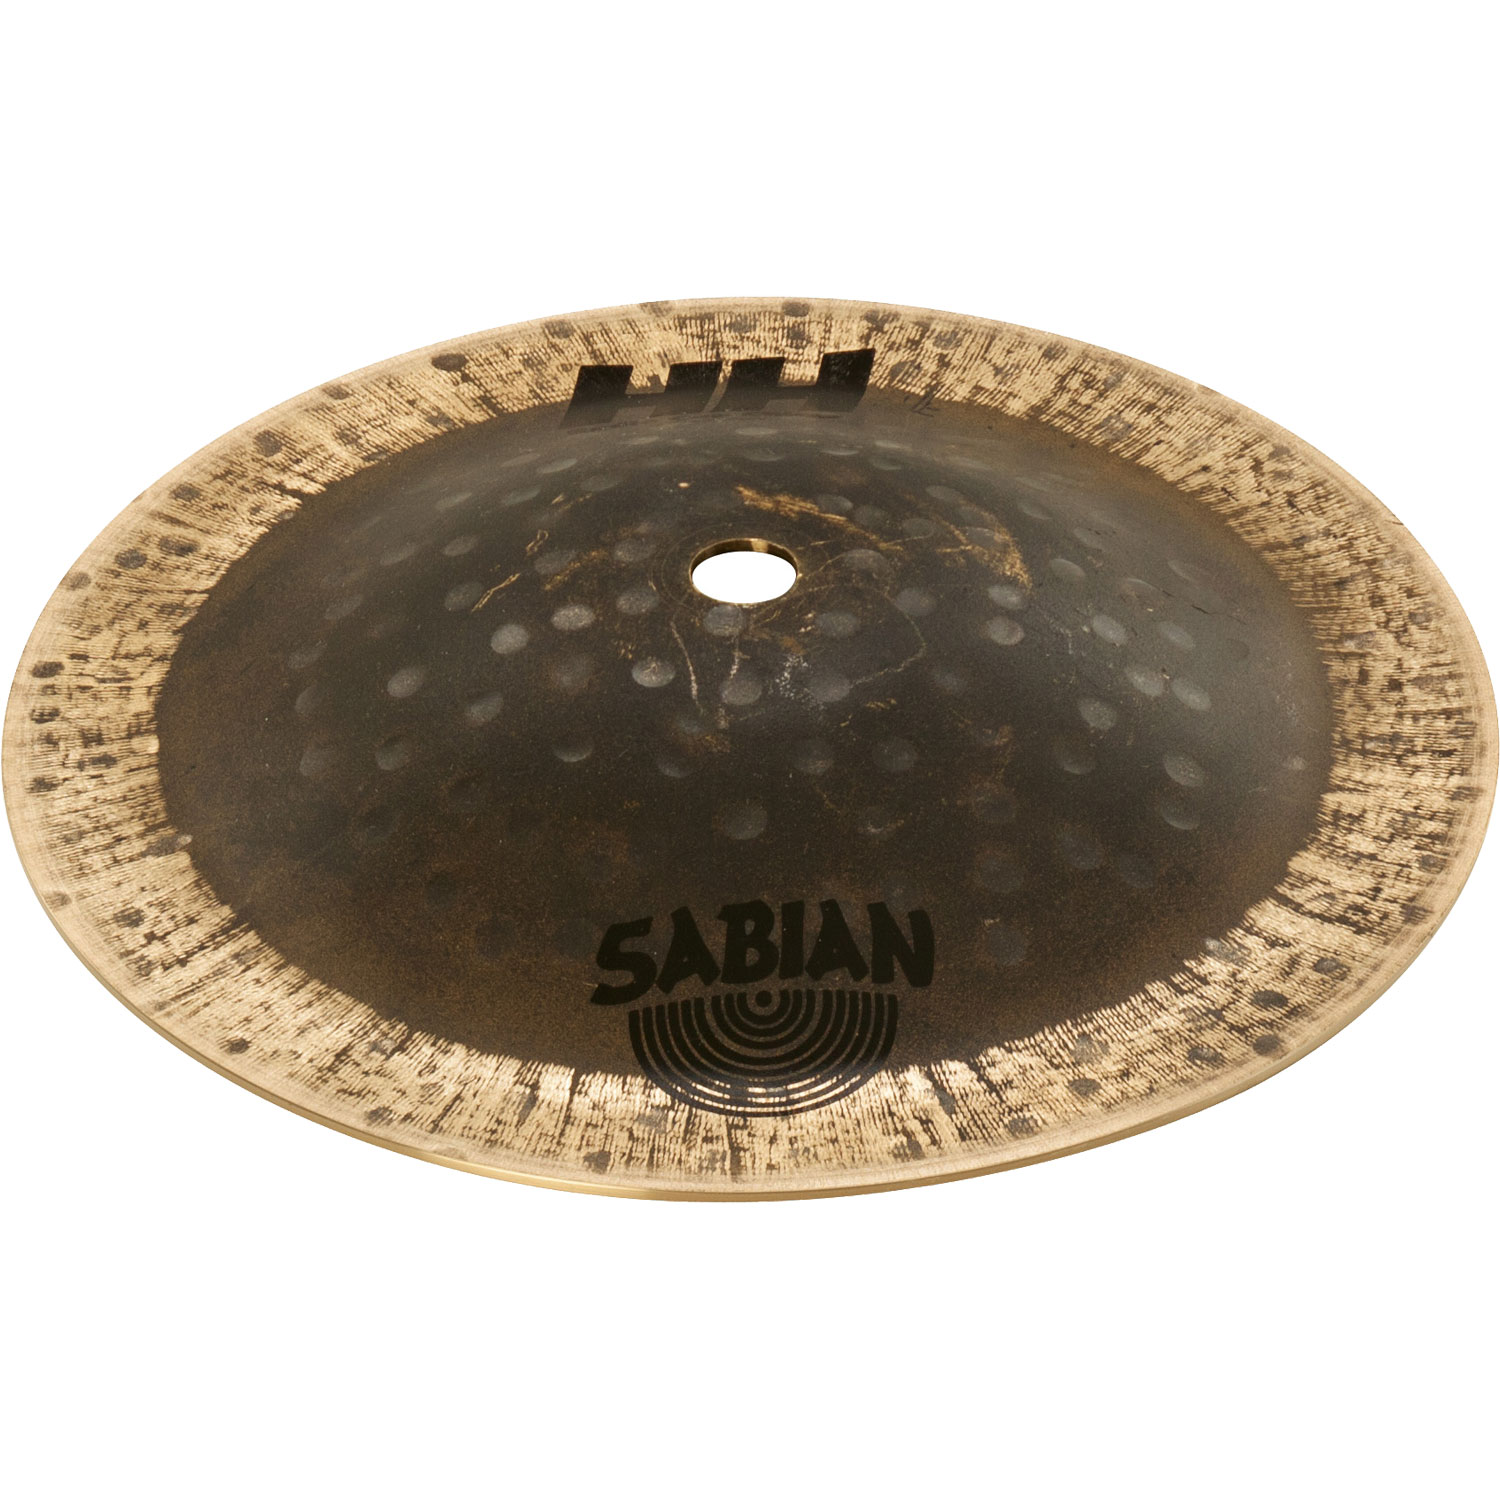 "Sabian 7"" Radia Cup Chime with Natural Finish"